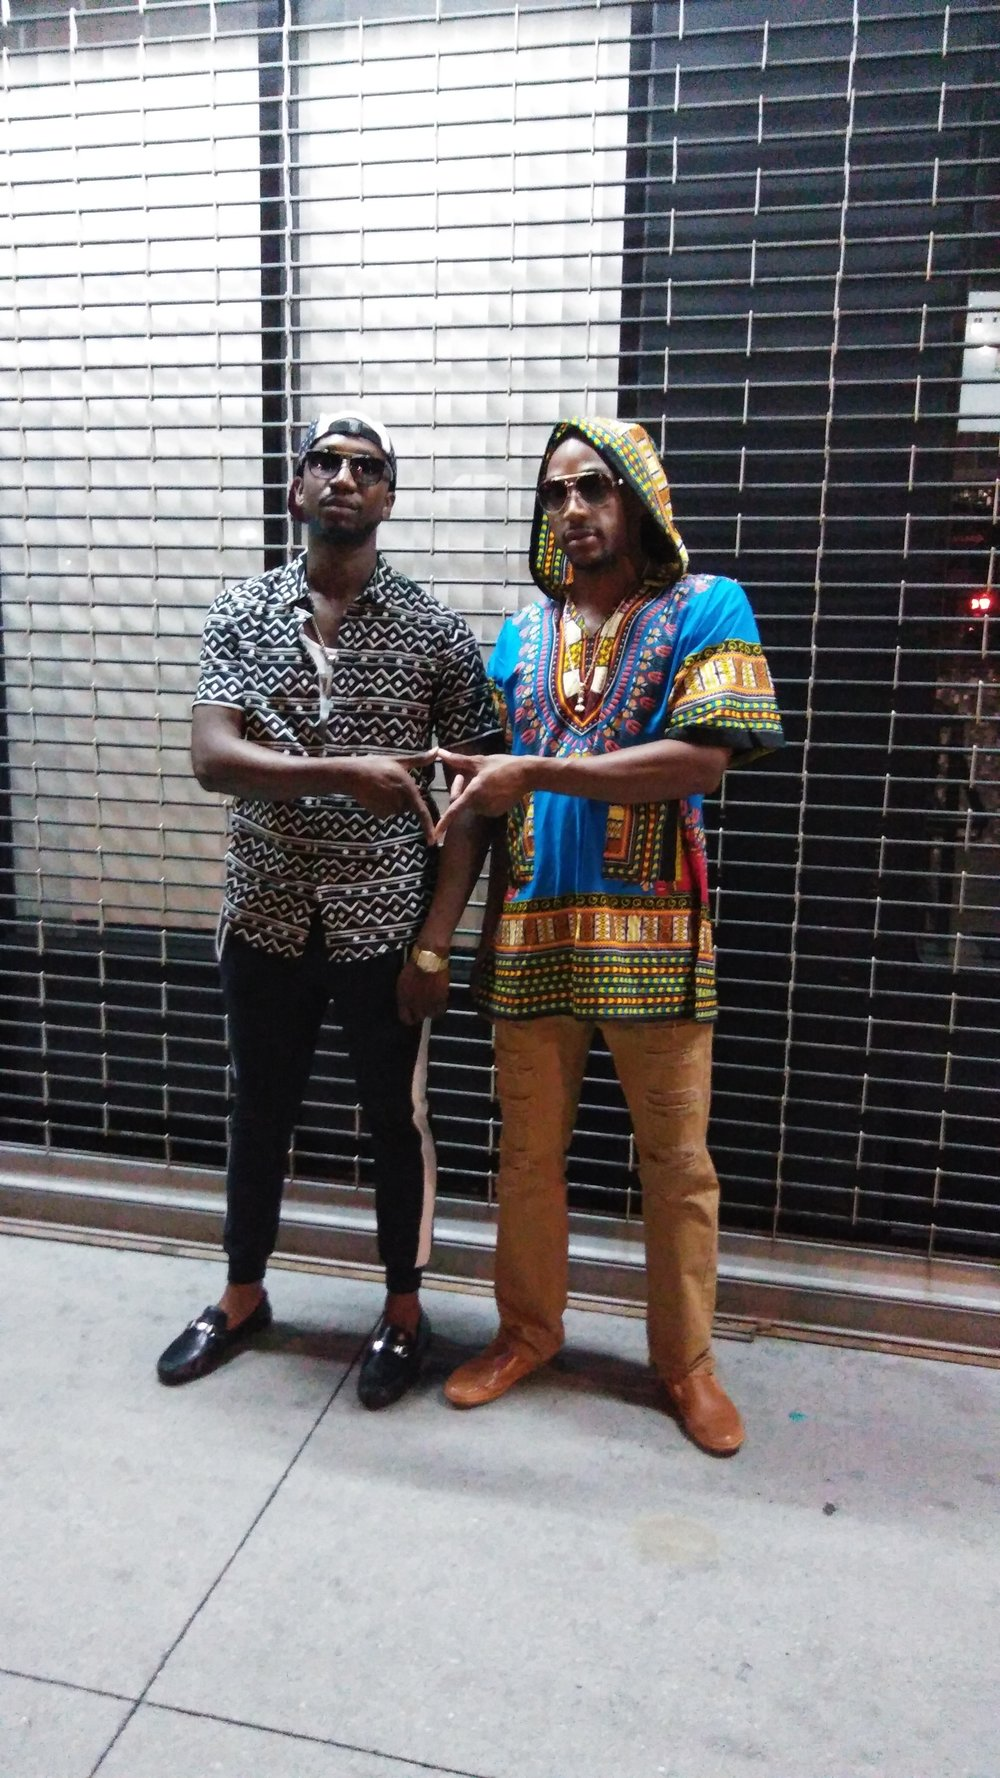 AFRIKAN KARTEL POSTING UP FOR A PIC AFTER PERFORMING @ THE SHRINE MUSIC VENUE , NYC 2016